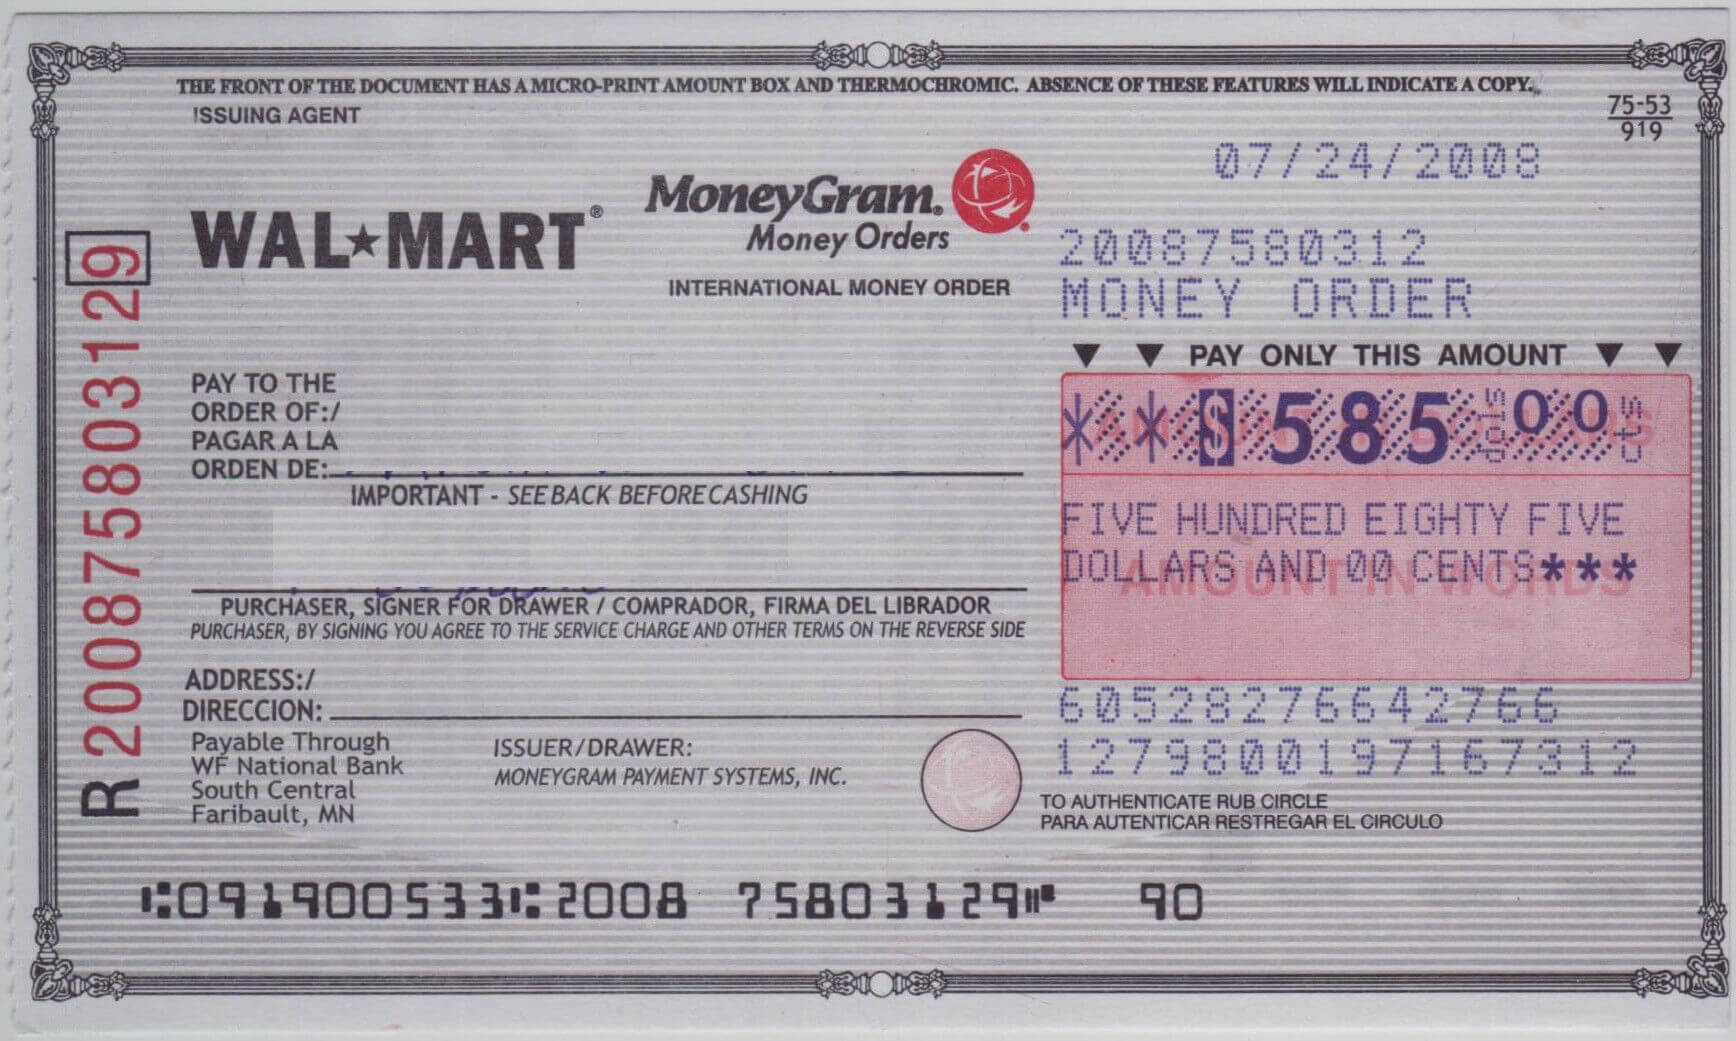 Blank Check Sample | How To Fill Out A Moneygram Money Order With Regard To Blank Money Order Template